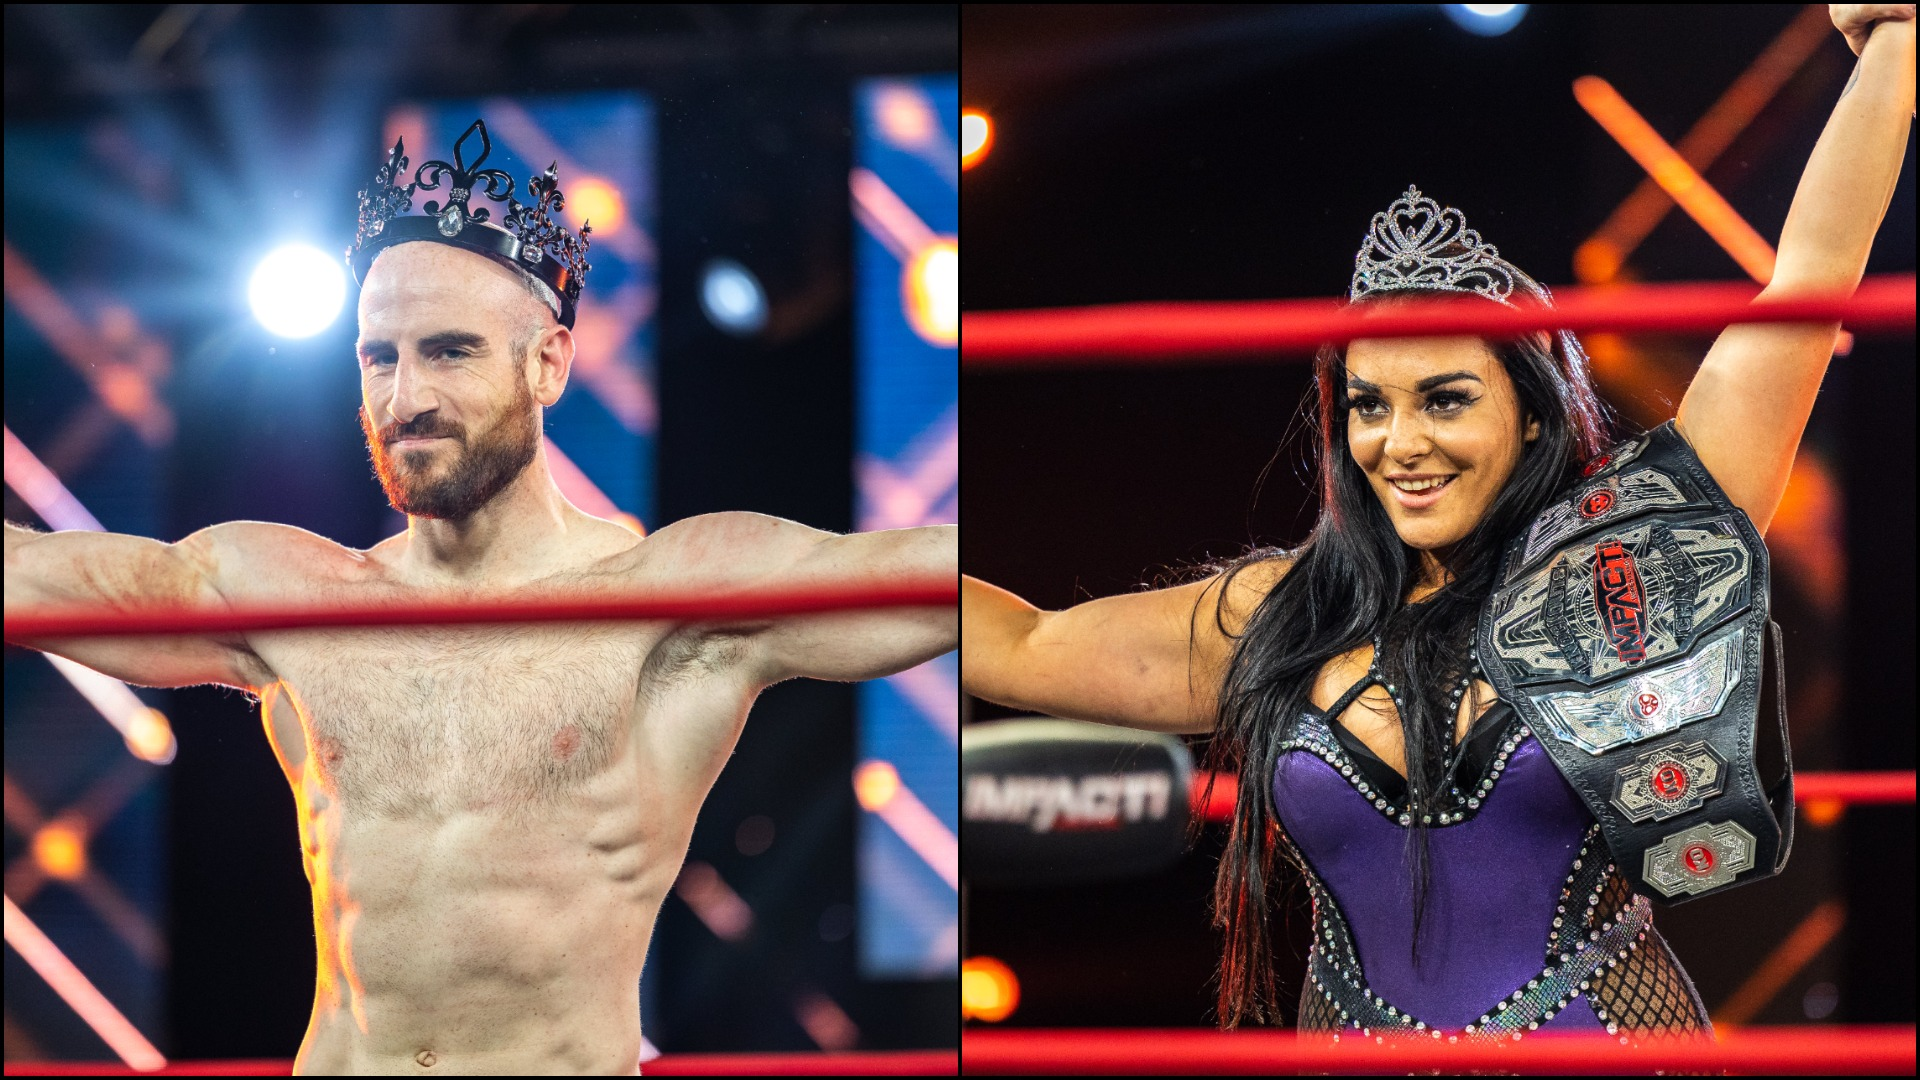 Drama King & Virtuosa Queen Following Flawless Tournament Performance – IMPACT Wrestling